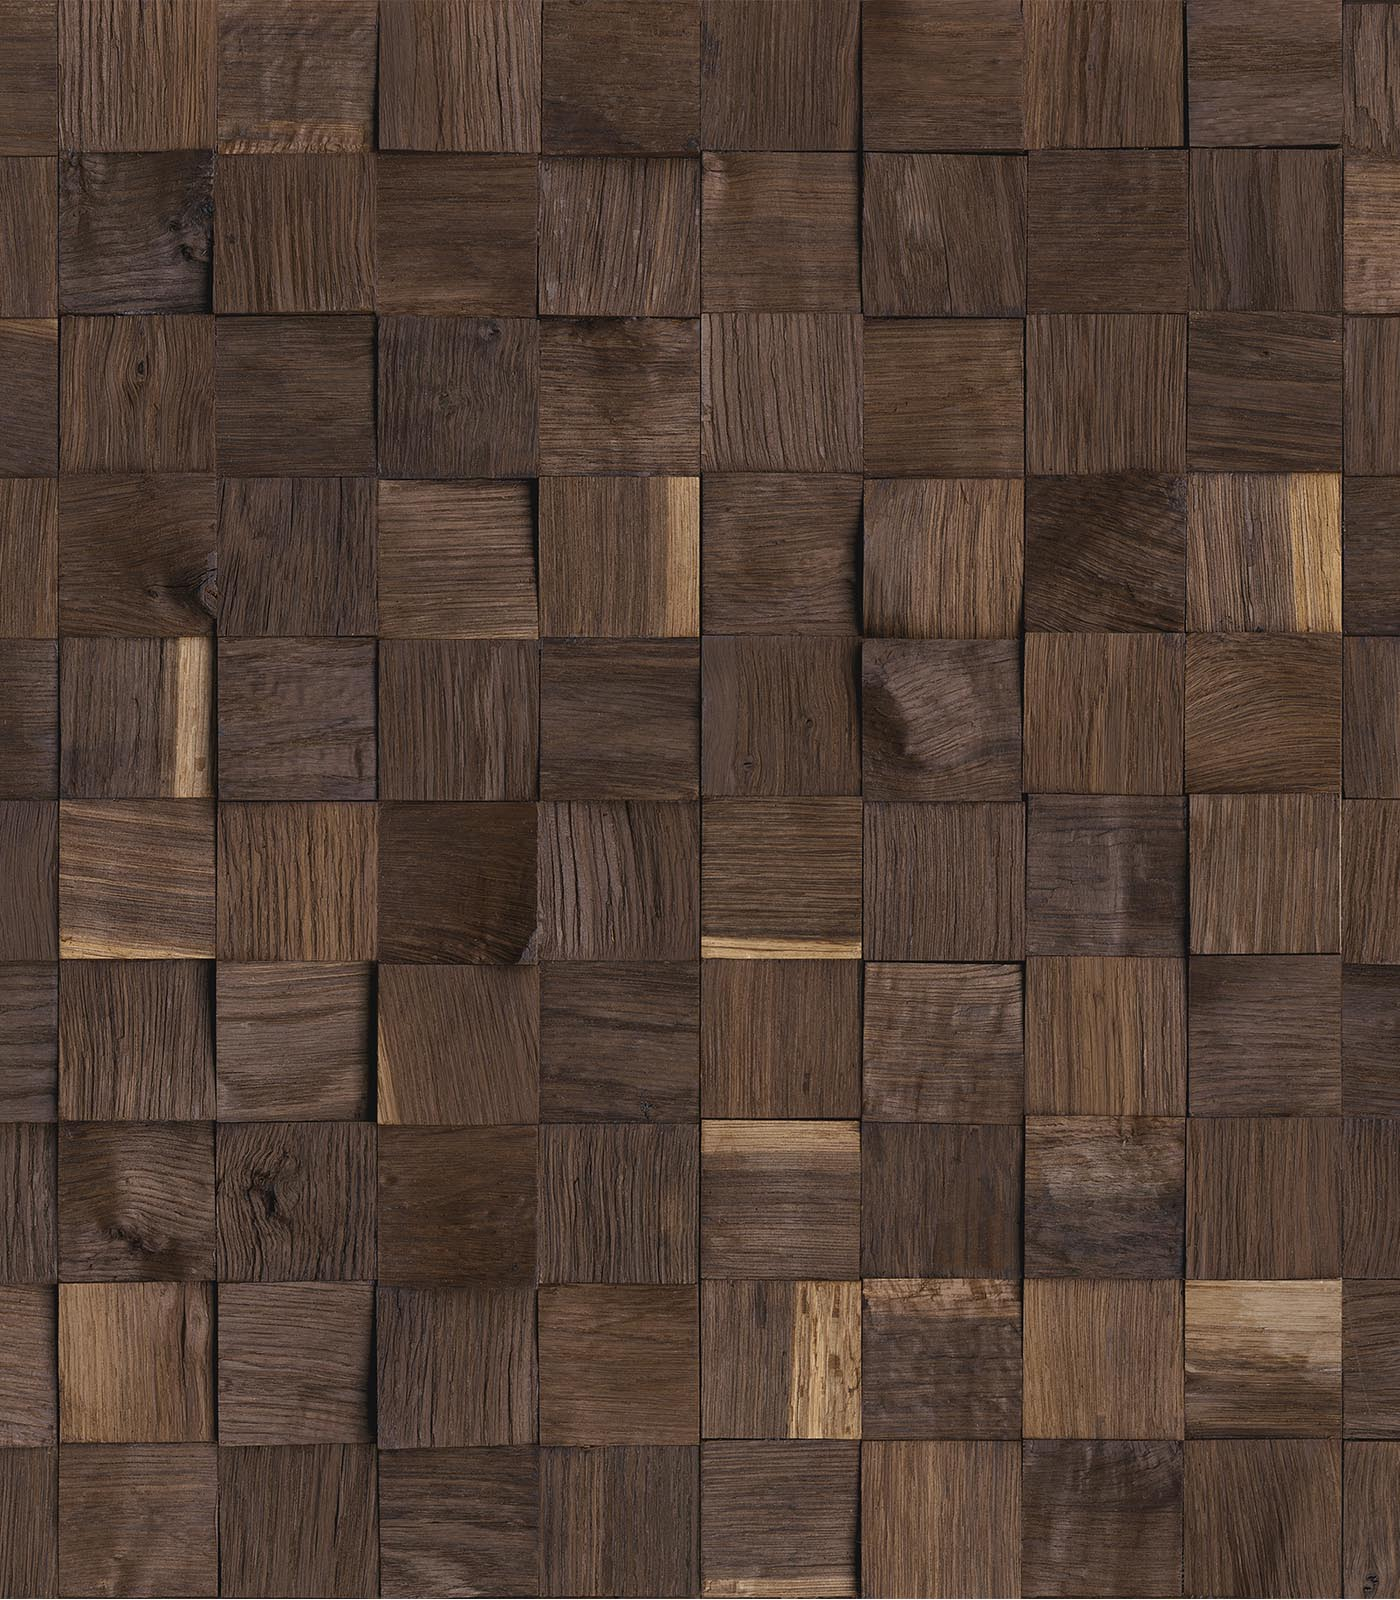 Heracles-Baroque Collection-European Oak wall panelling-flat